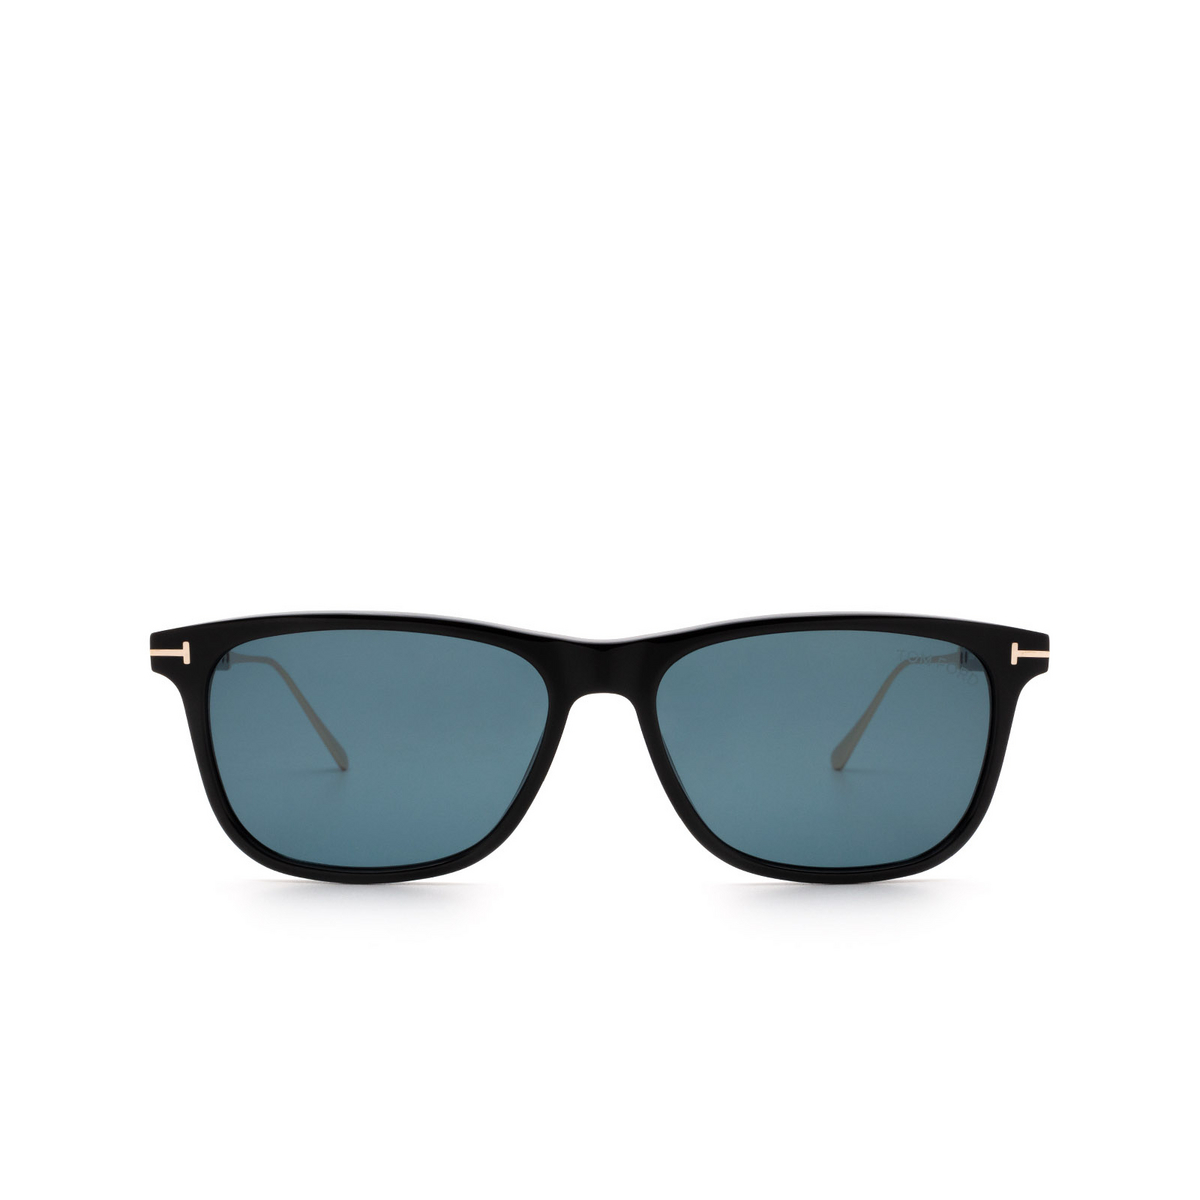 Tom Ford® Rectangle Sunglasses: Caleb FT0813 color Shiny Black 01V - front view.